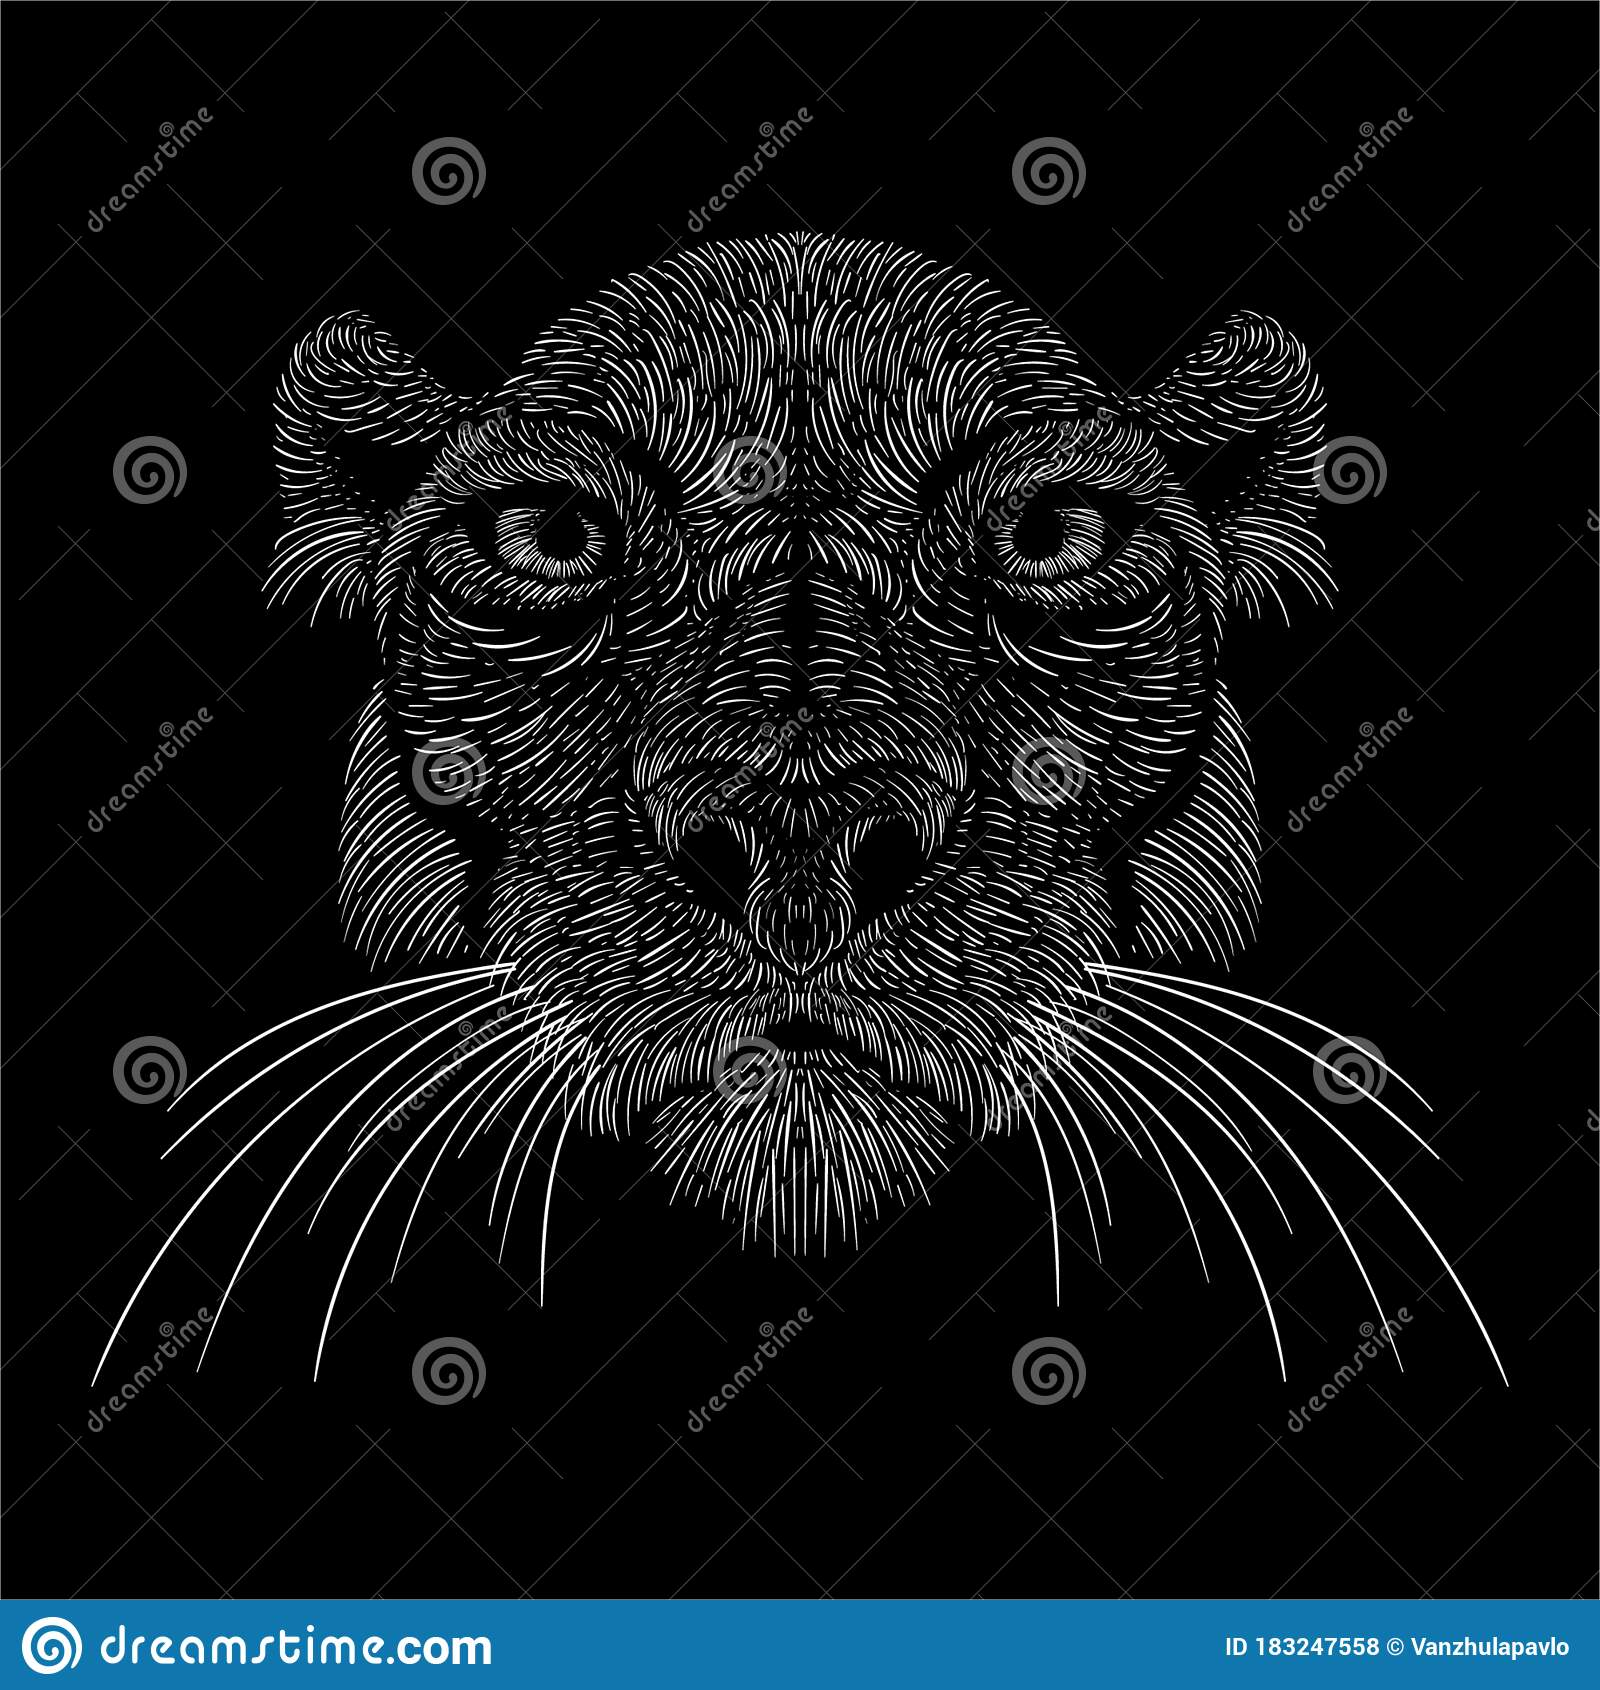 Lion Lioness Animal Vector Illustration Art Print T Shirt Apparel Or Tattoo Design Or Outwear Hunting Style Cat Background This Stock Vector Illustration Of Natural Halloween 183247558